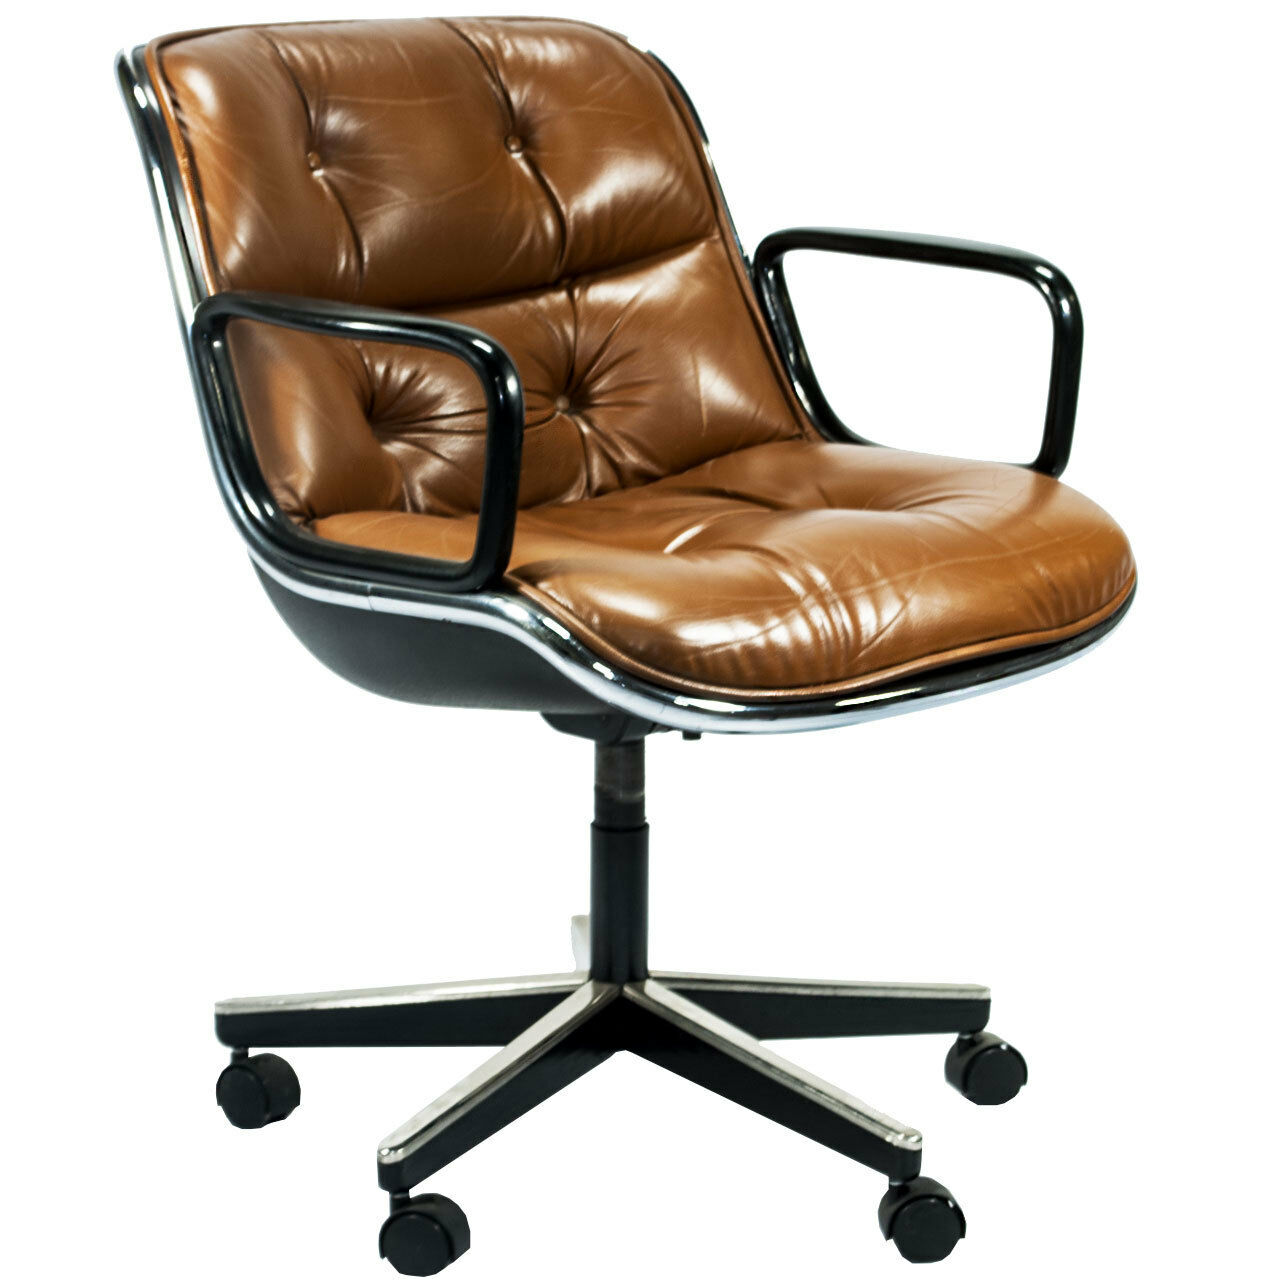 pollock executive chair replica large dining room cushions mid century charles knoll leather swivel office ebay